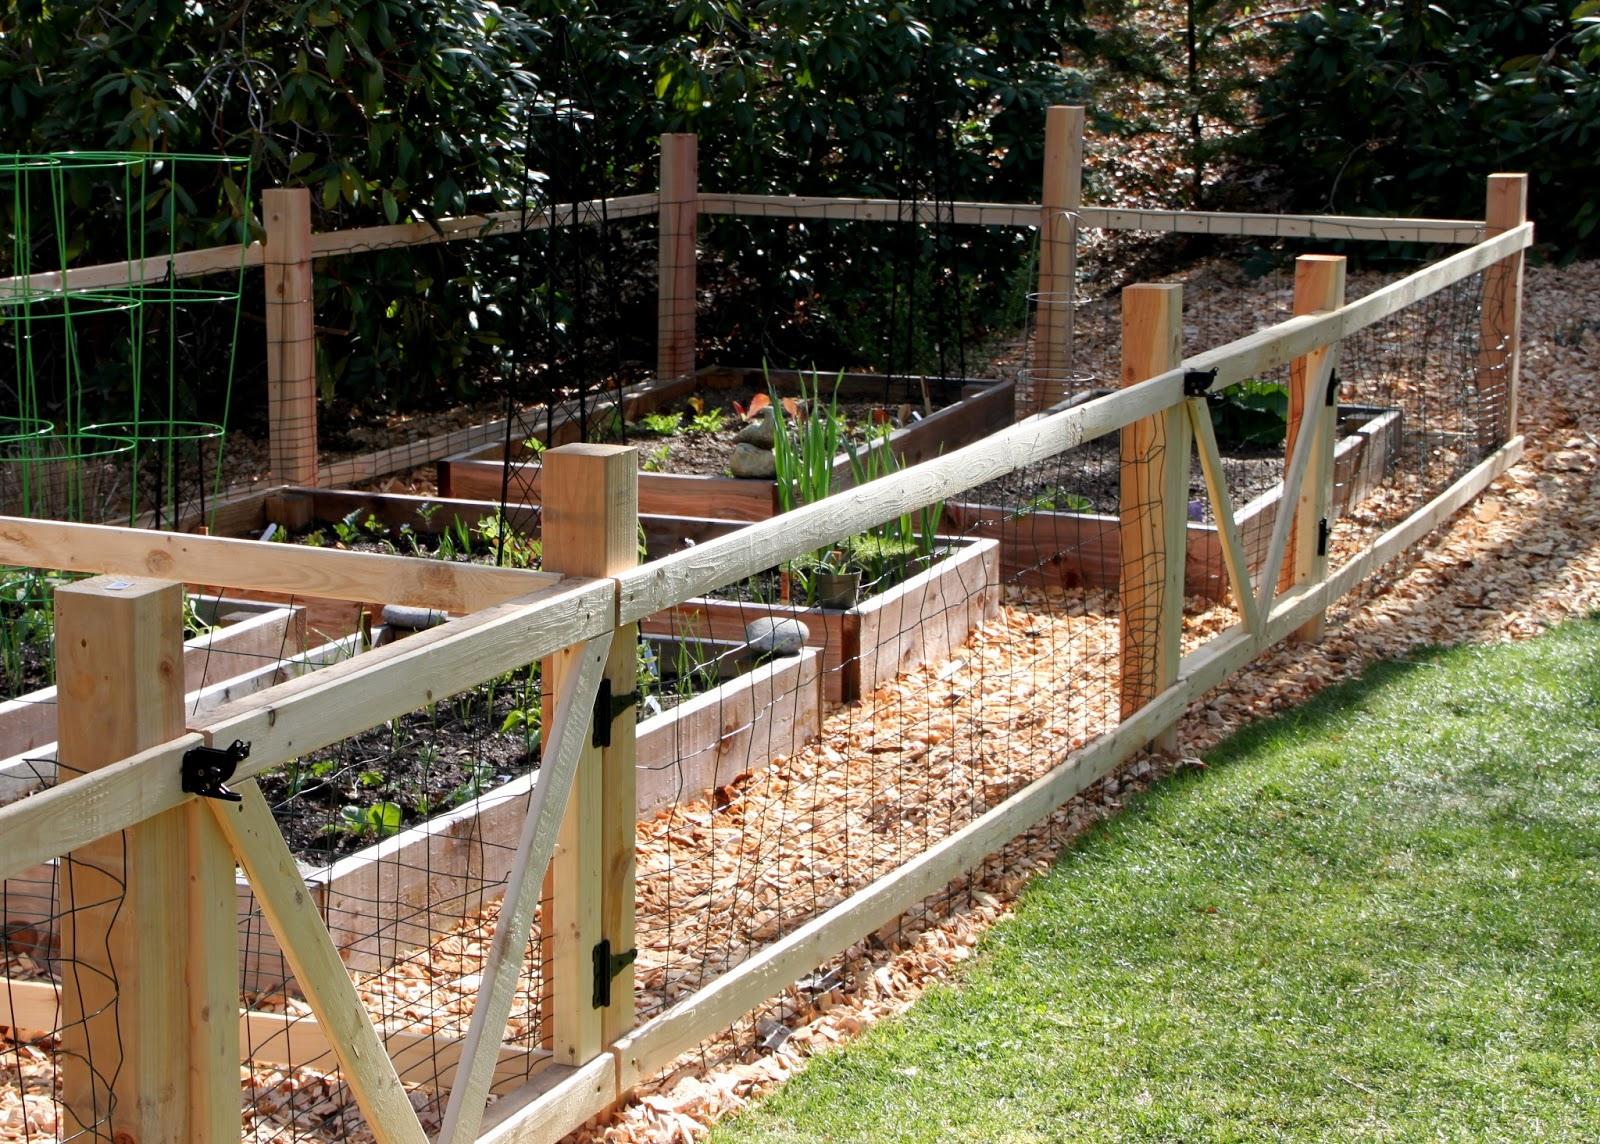 How To Build A Garden With Chicken Wire Fence Subulussalam